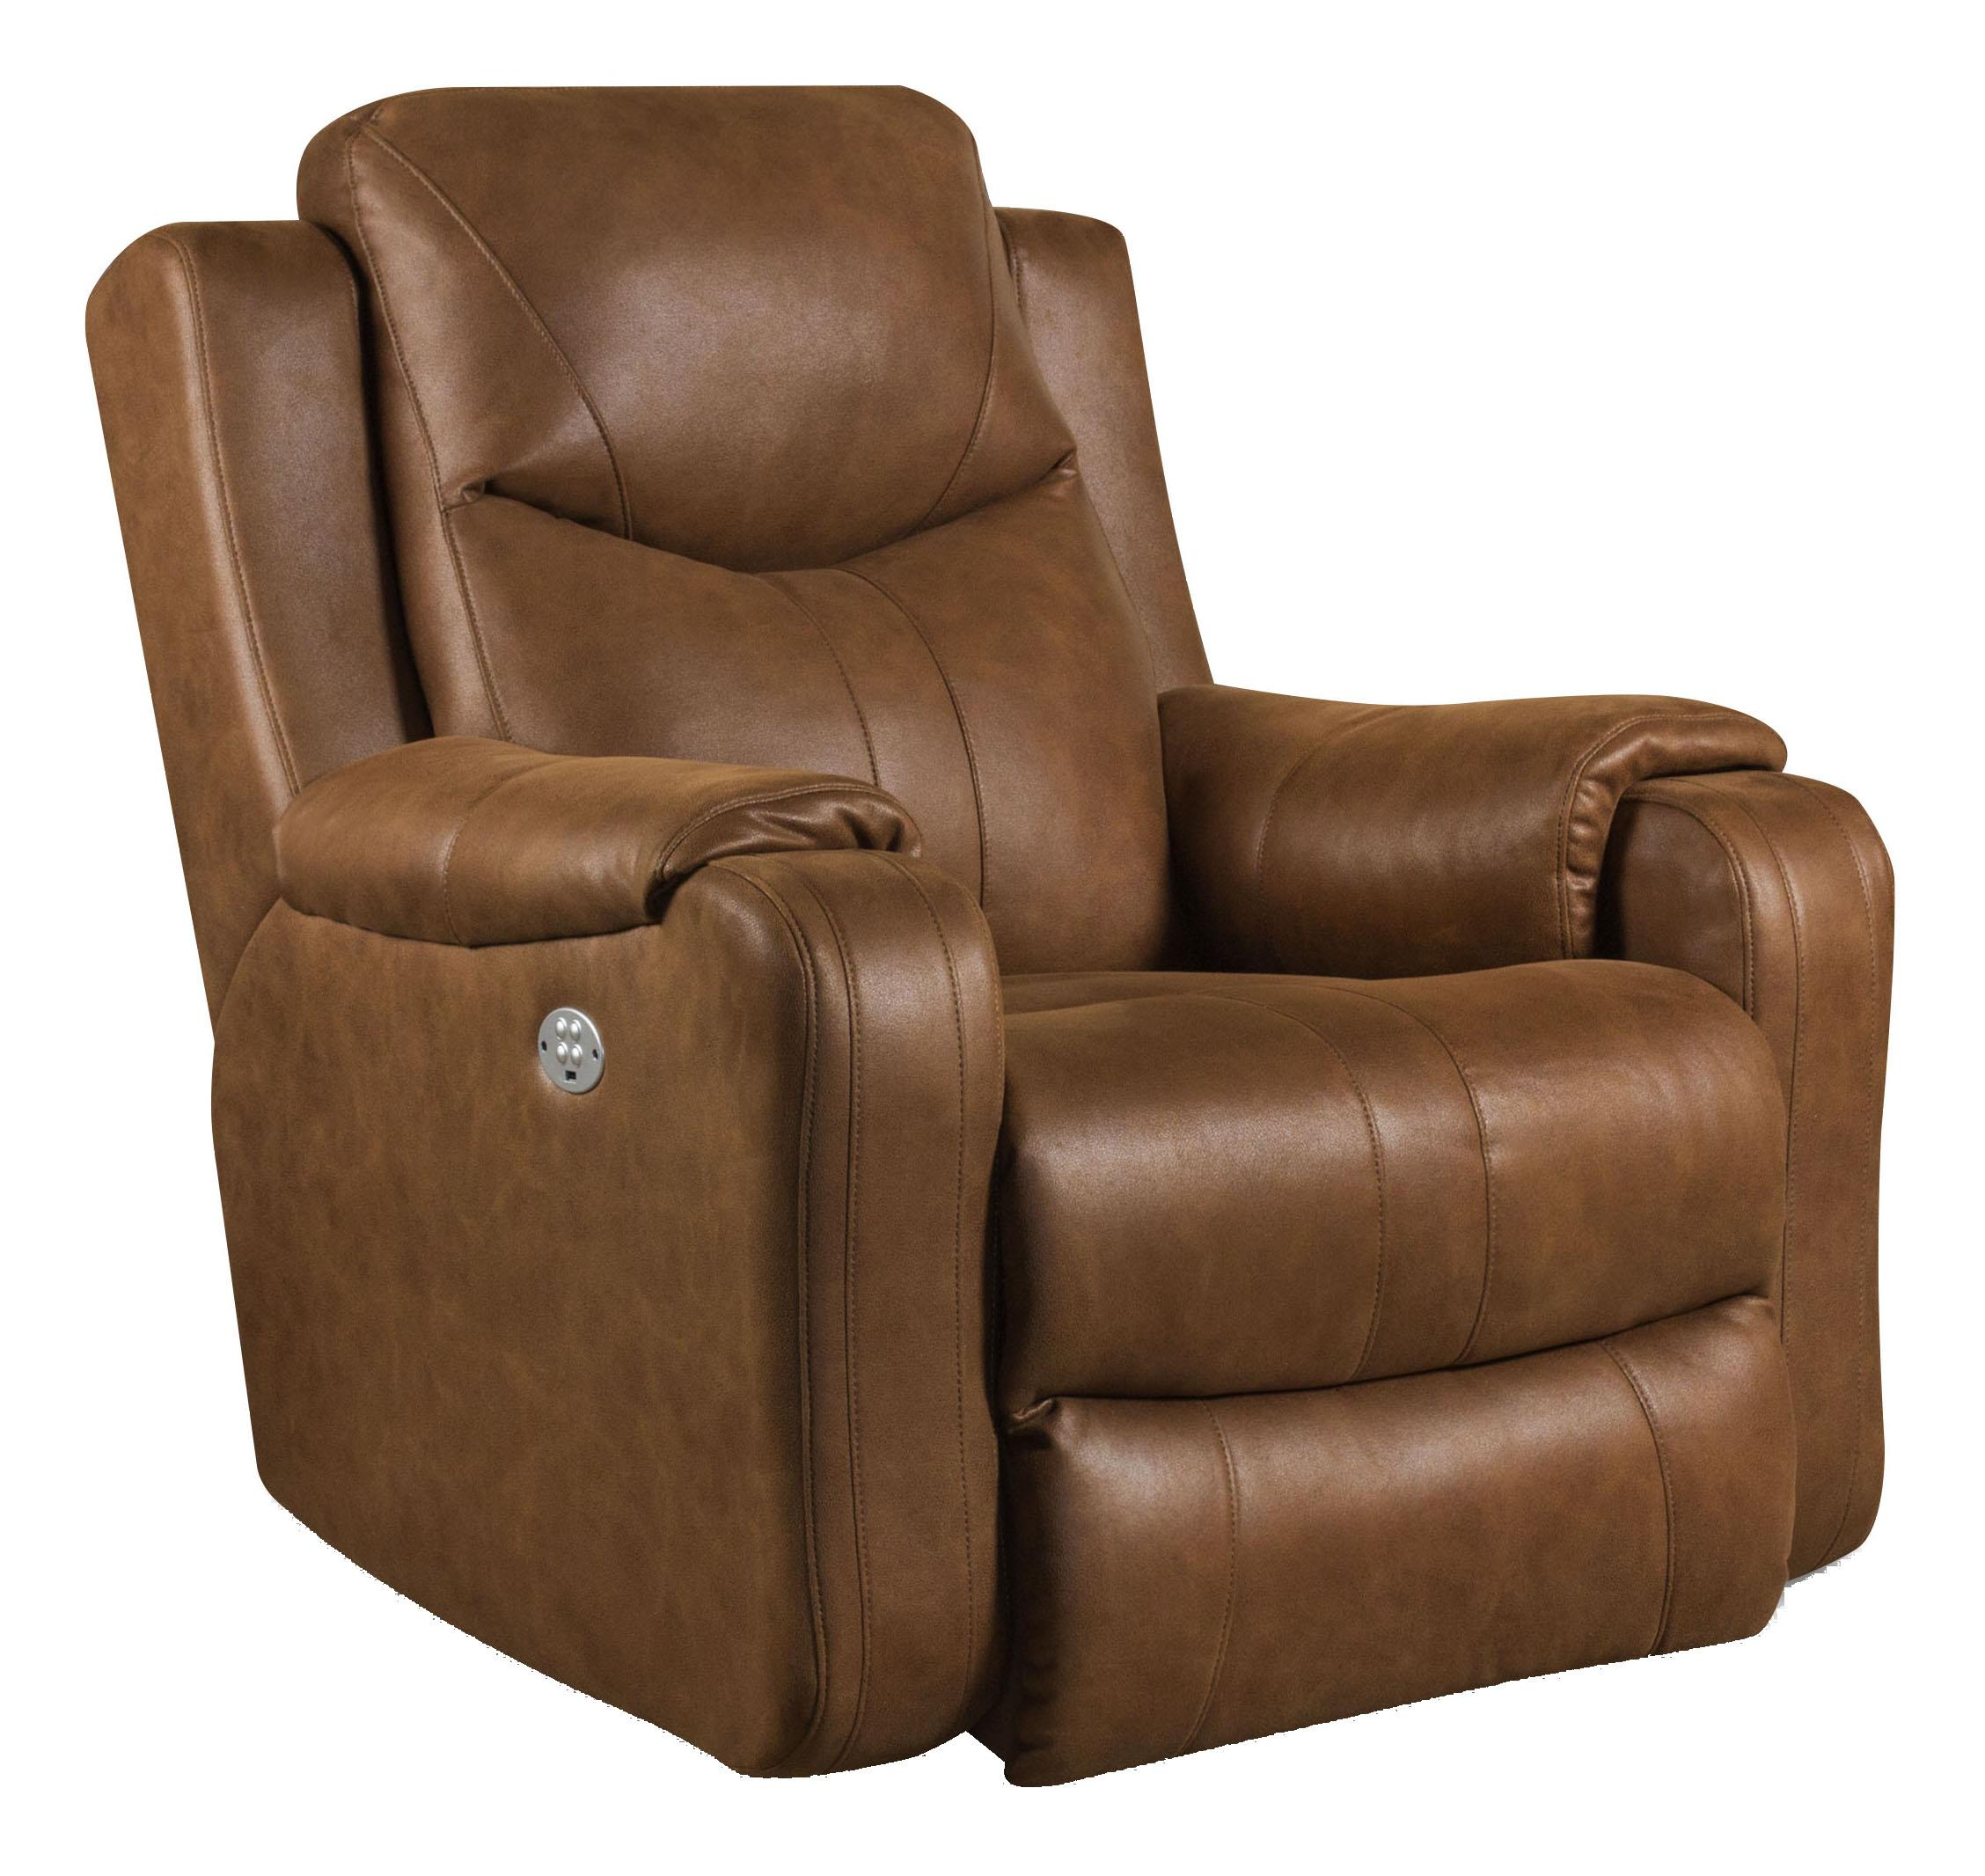 wall hugger recliner chair hanging how to install by southern motion wolf and gardiner